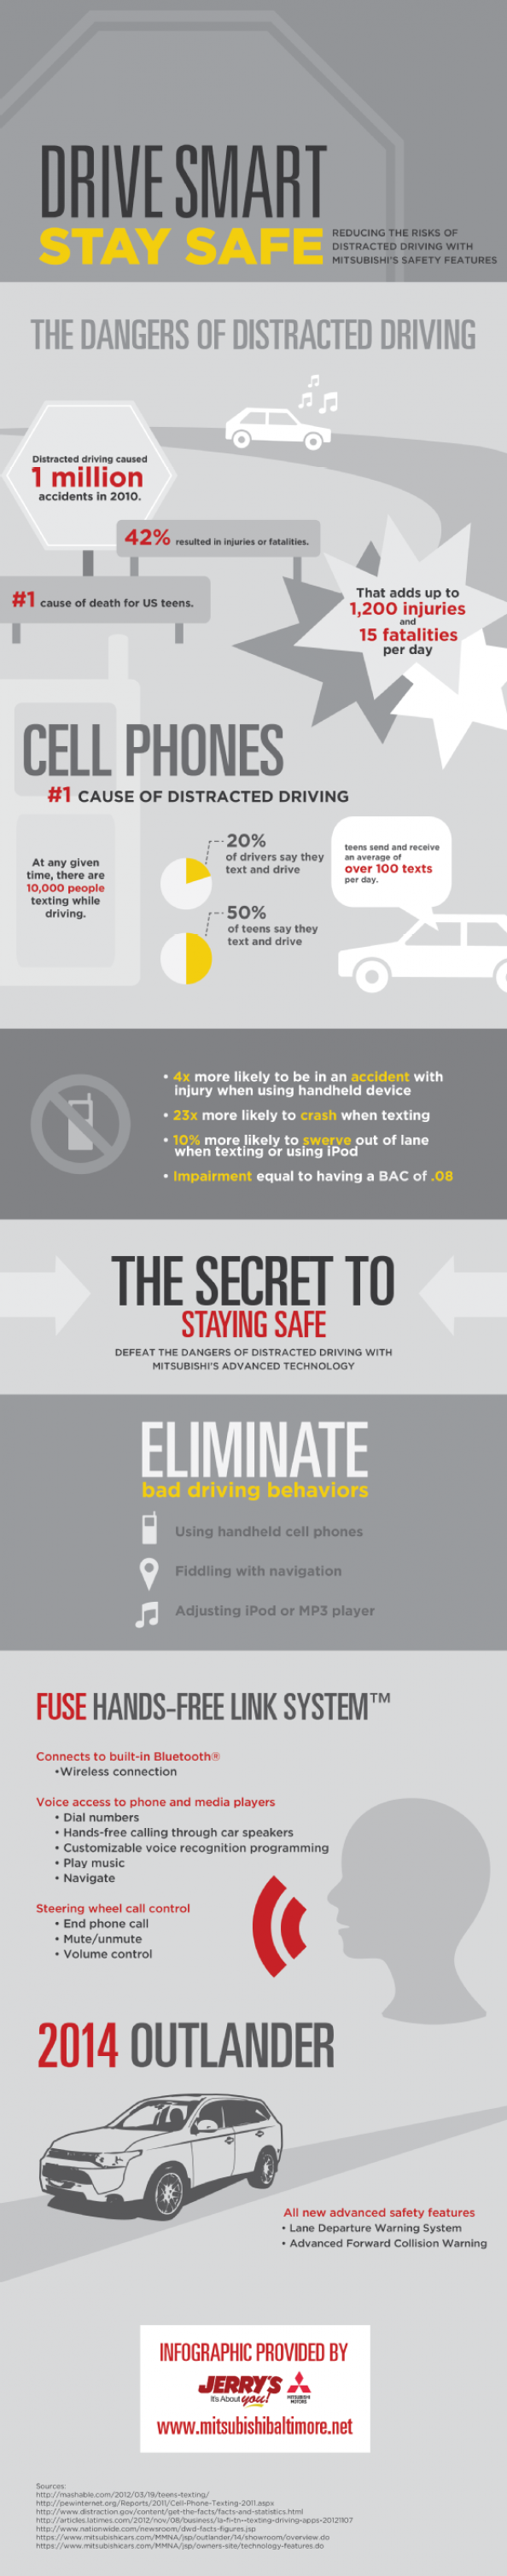 Drive Smart, Stay Safe: Reducing the Risks of Distracted Driving with Mitsubishi's Safety Features  Infographic